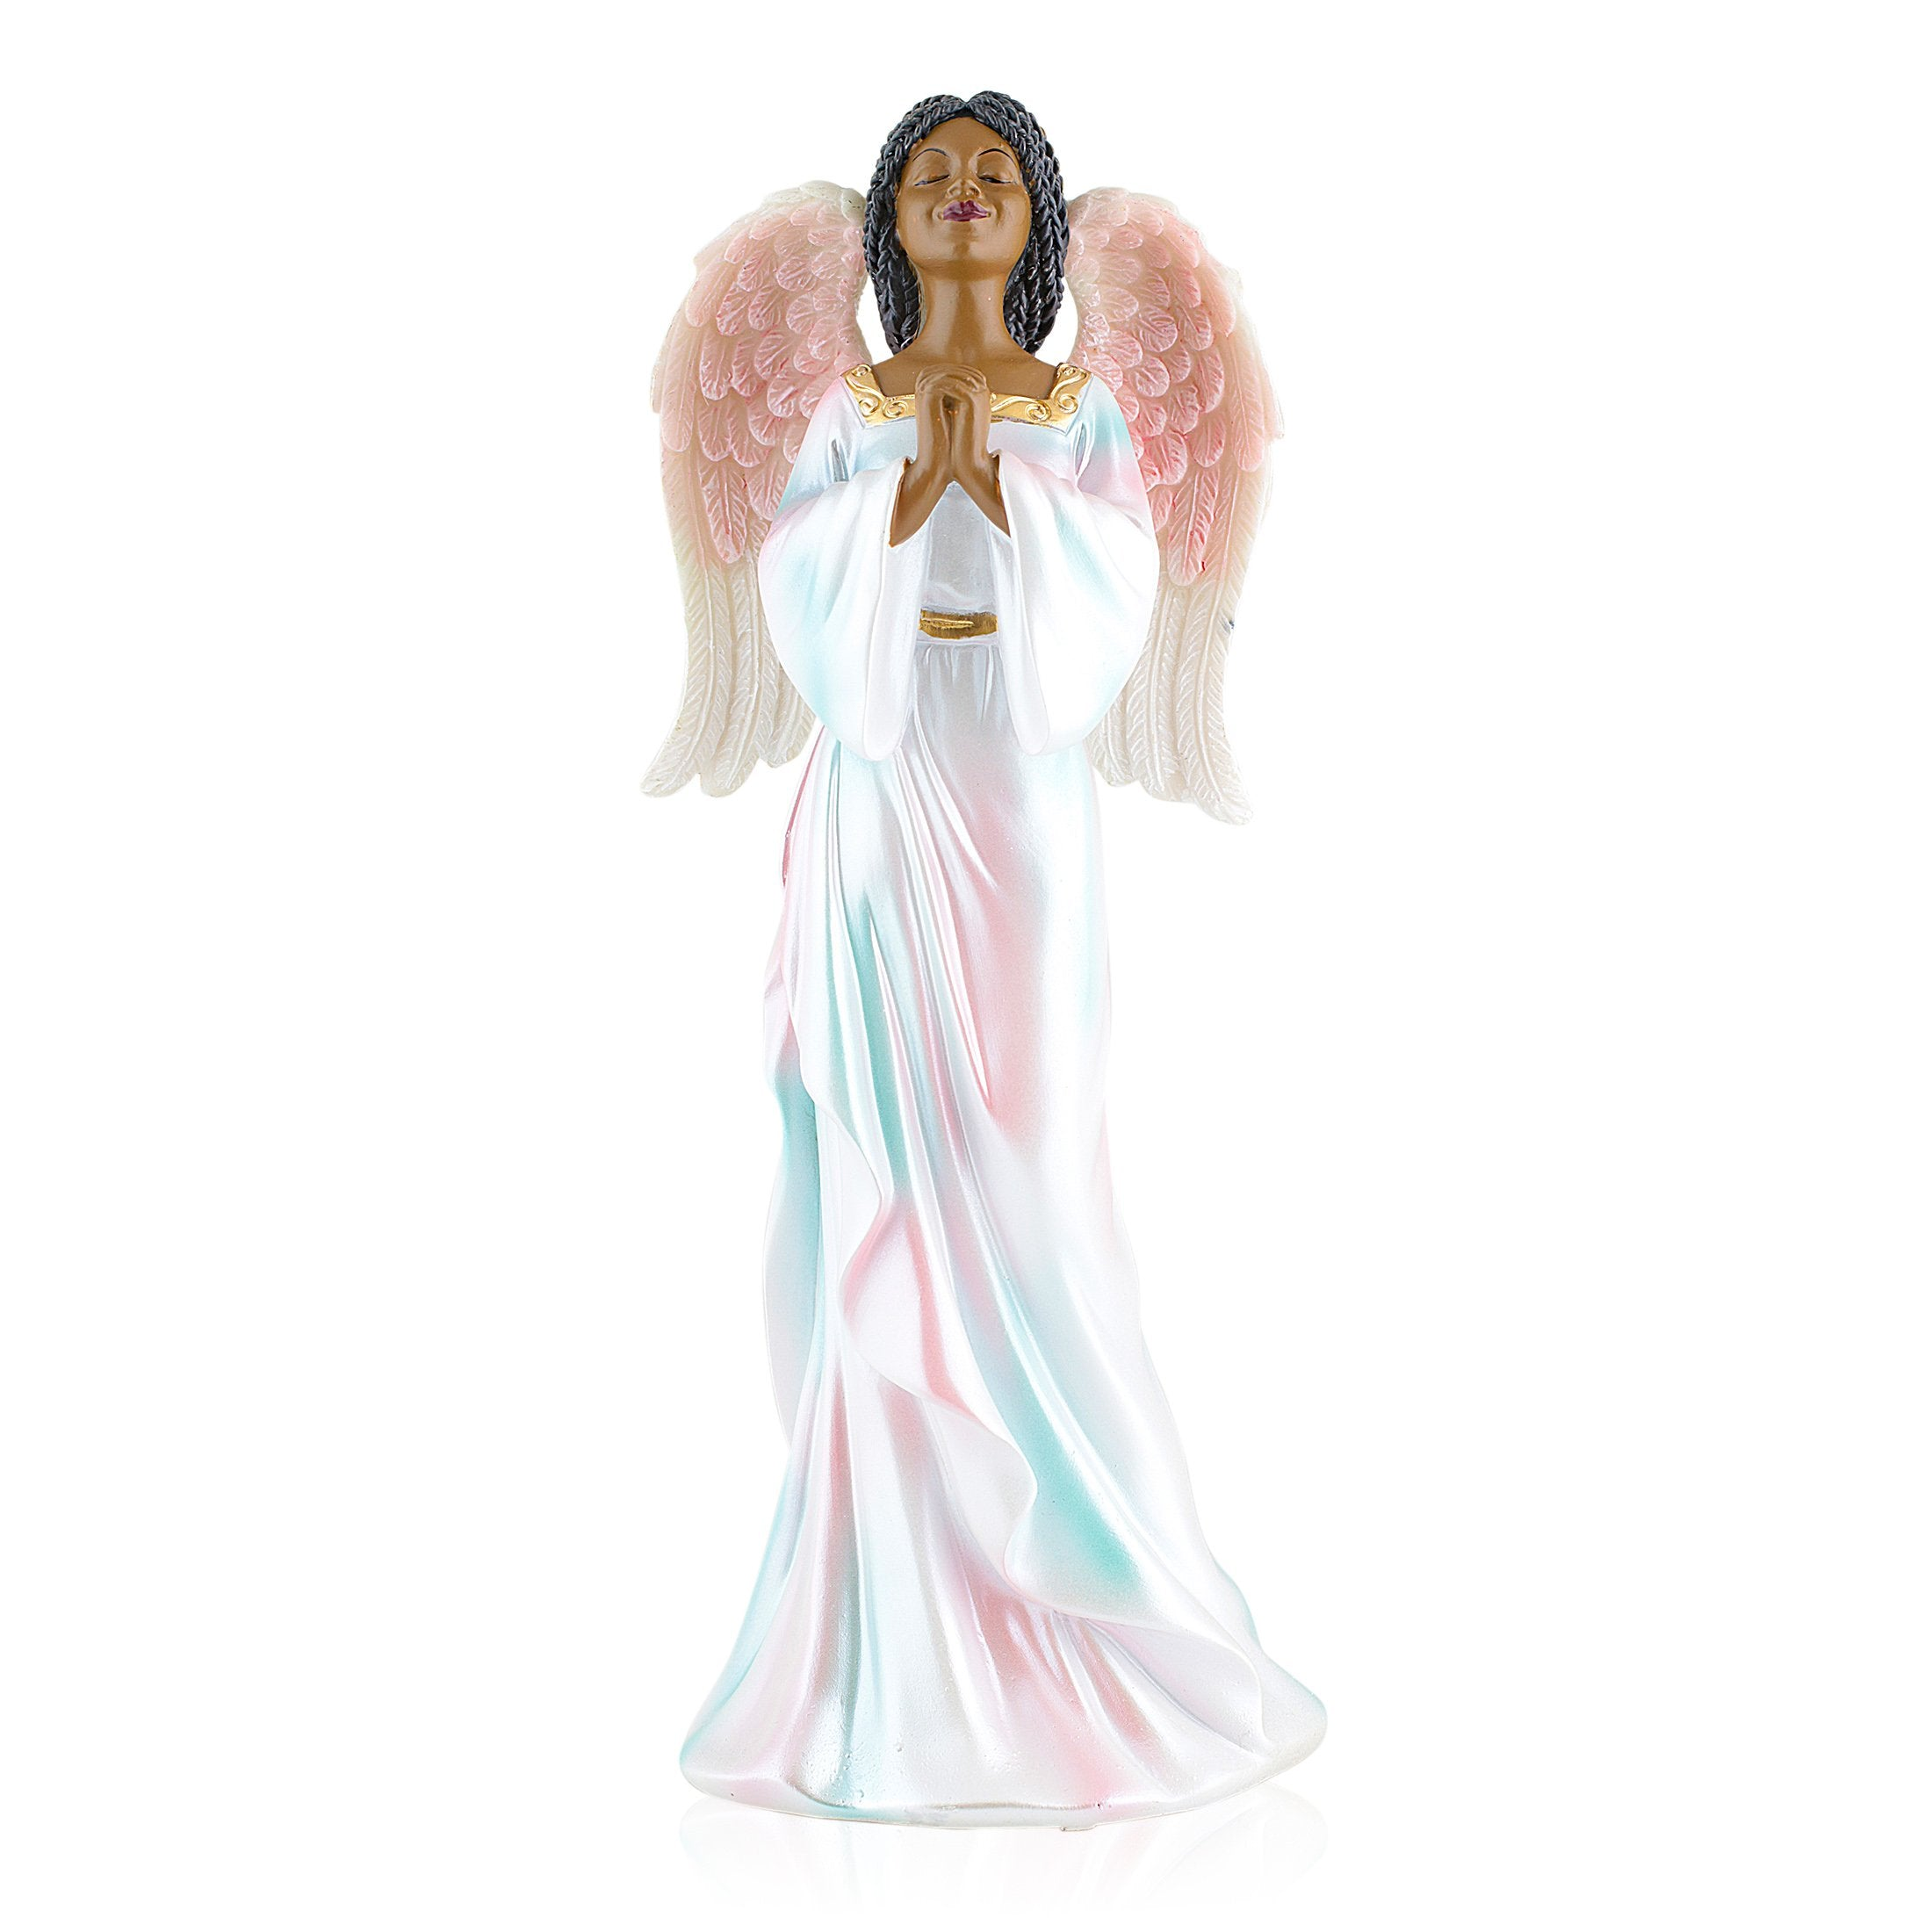 Prayerful: African American Angel Figurine by Positive Image Gifts